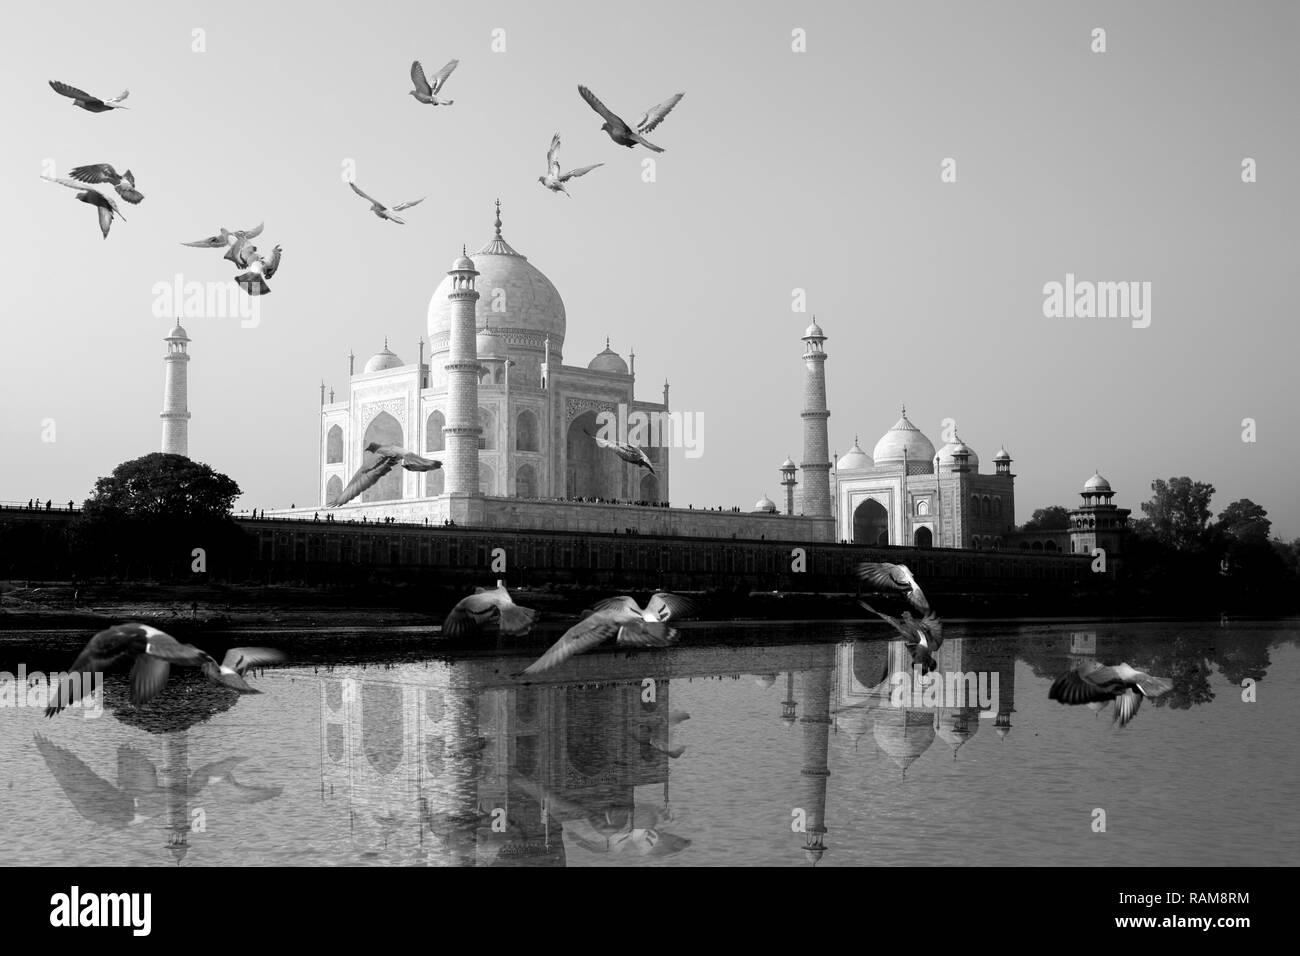 Taj Mahal reflected in Yamuna River view with bird flying across. Stock Photo